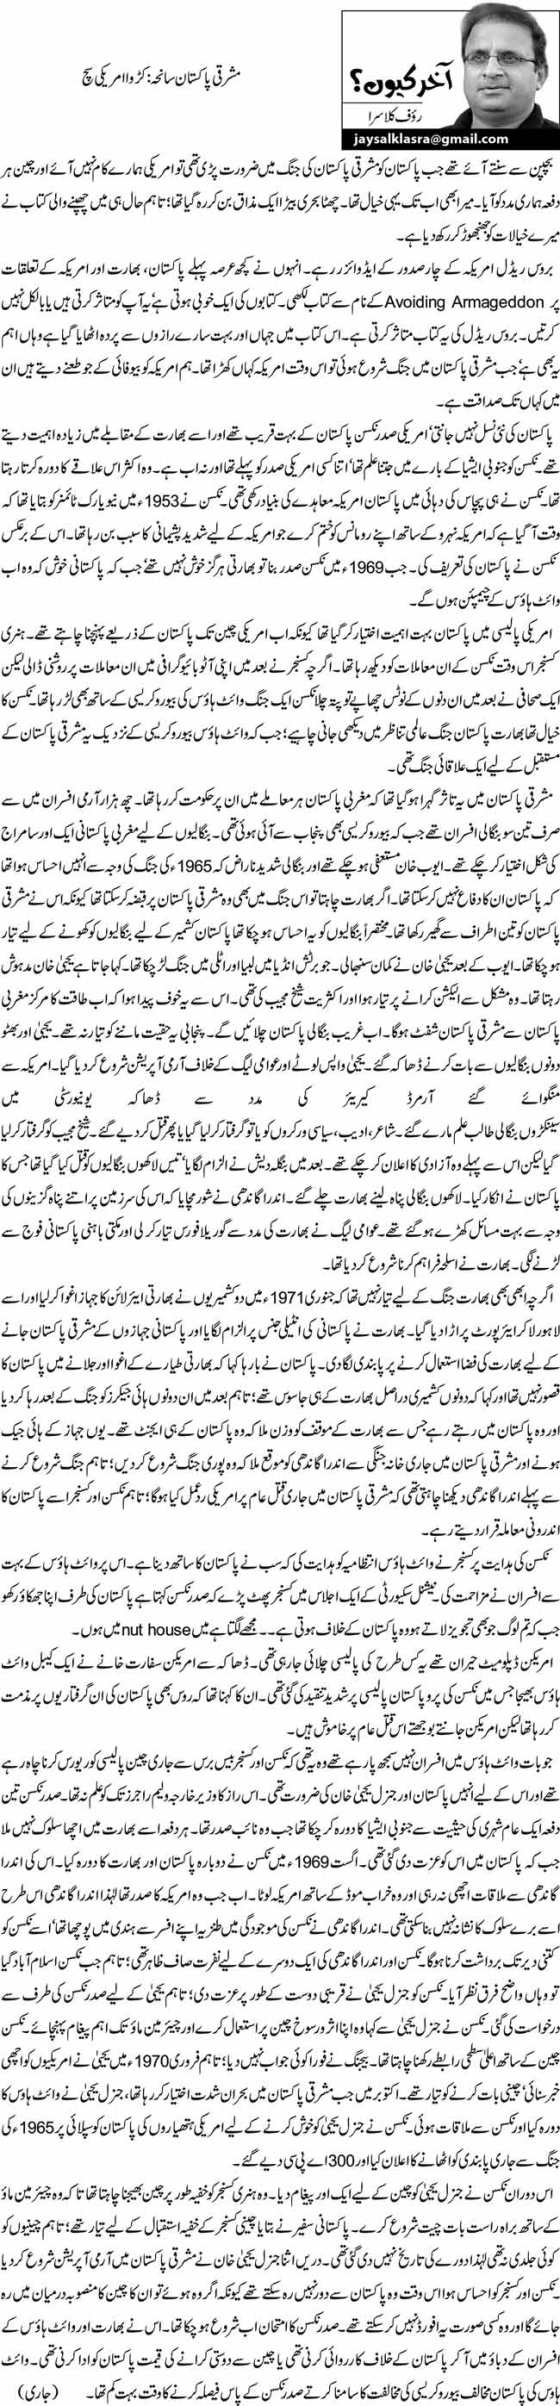 Expr_17-12-14_Tragedy of E-Pakistan_Bitter American Truth